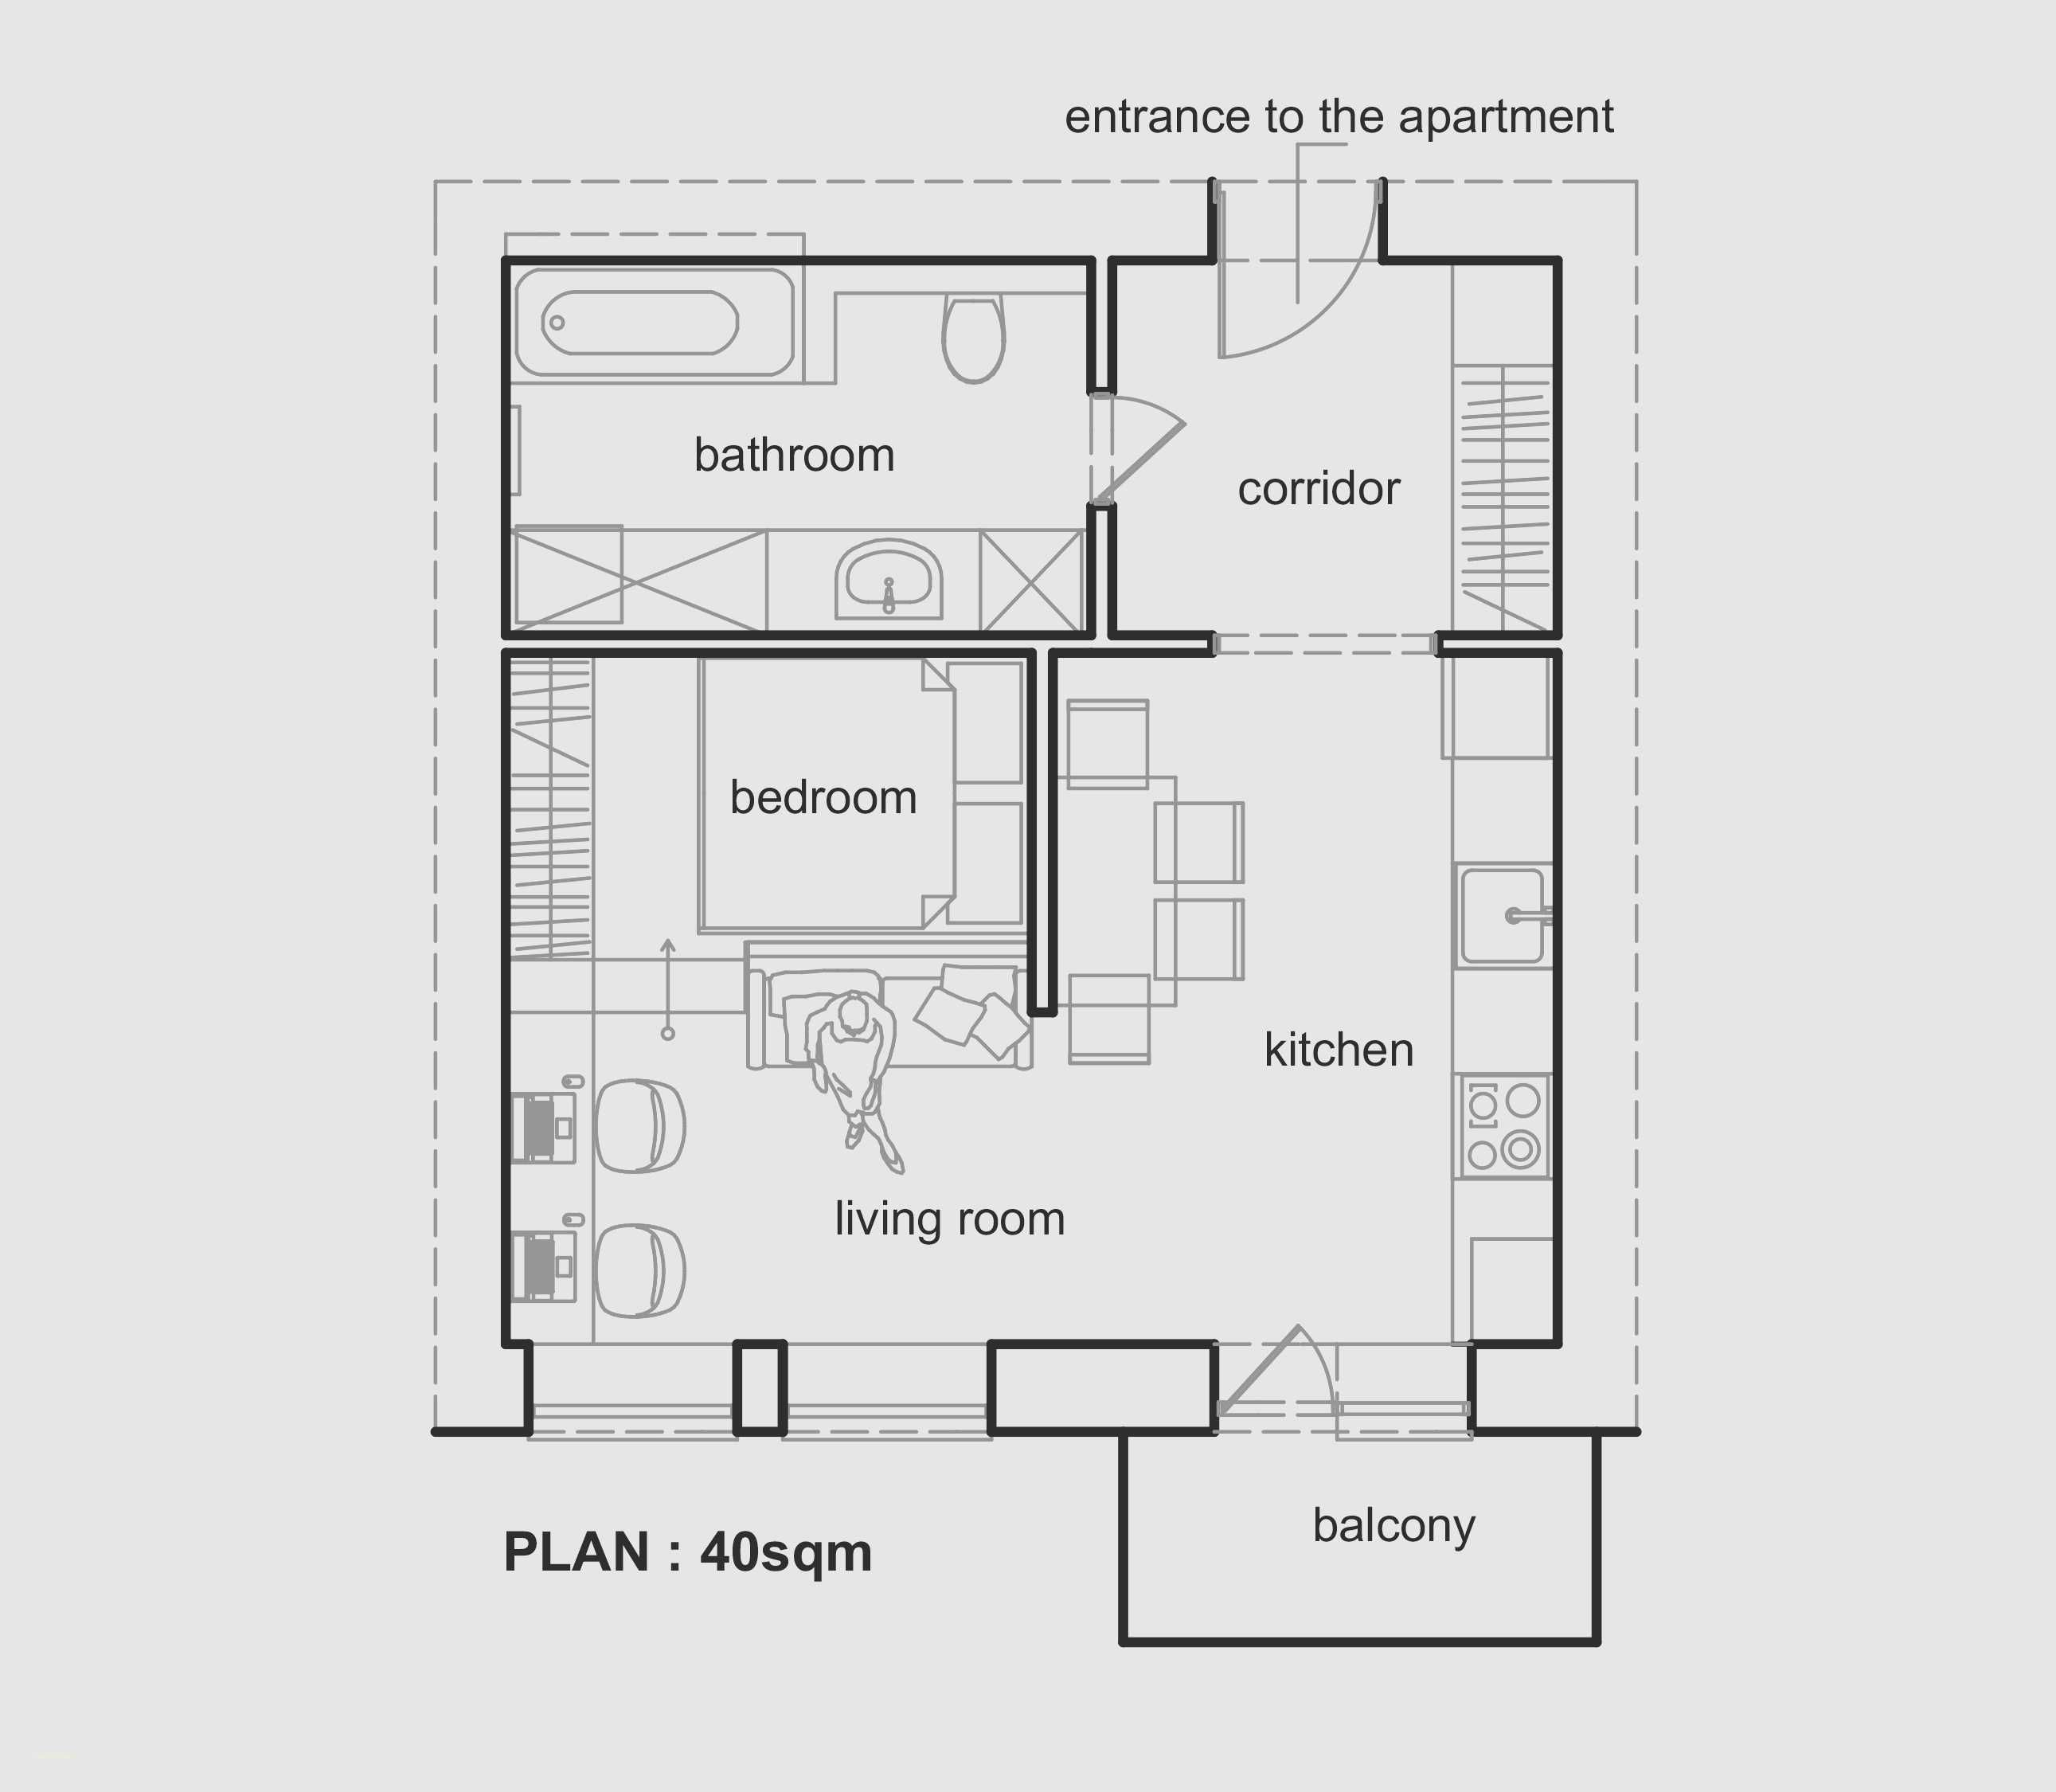 5sm hotel guest room plan - Google Search  Small apartment plans